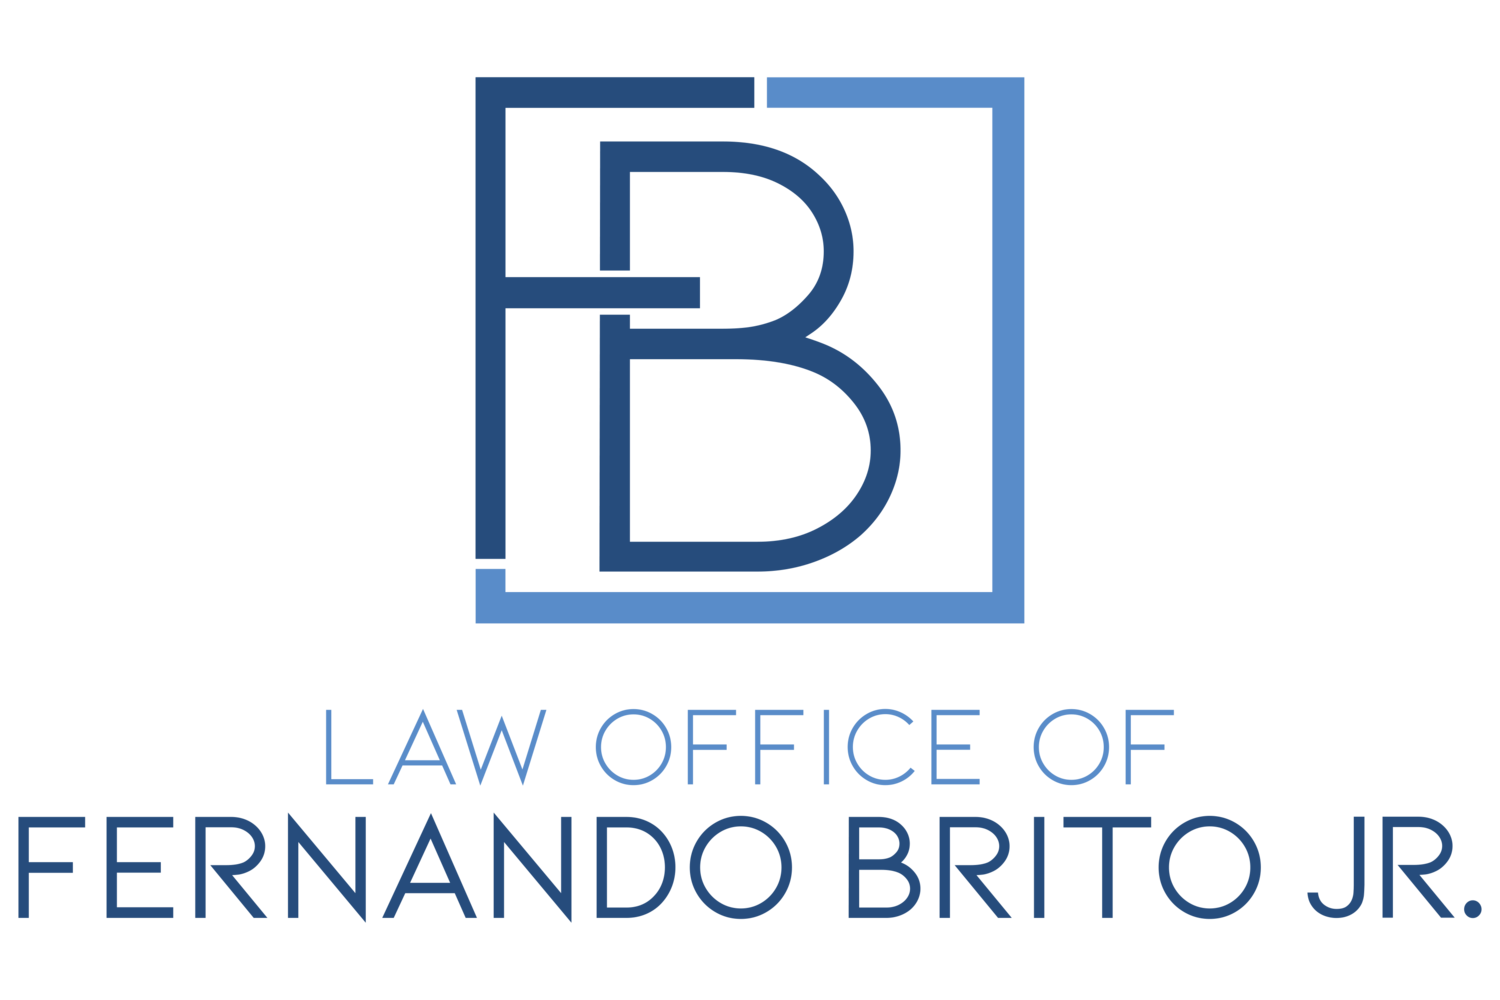 Law Office of Fernando Brito Jr.